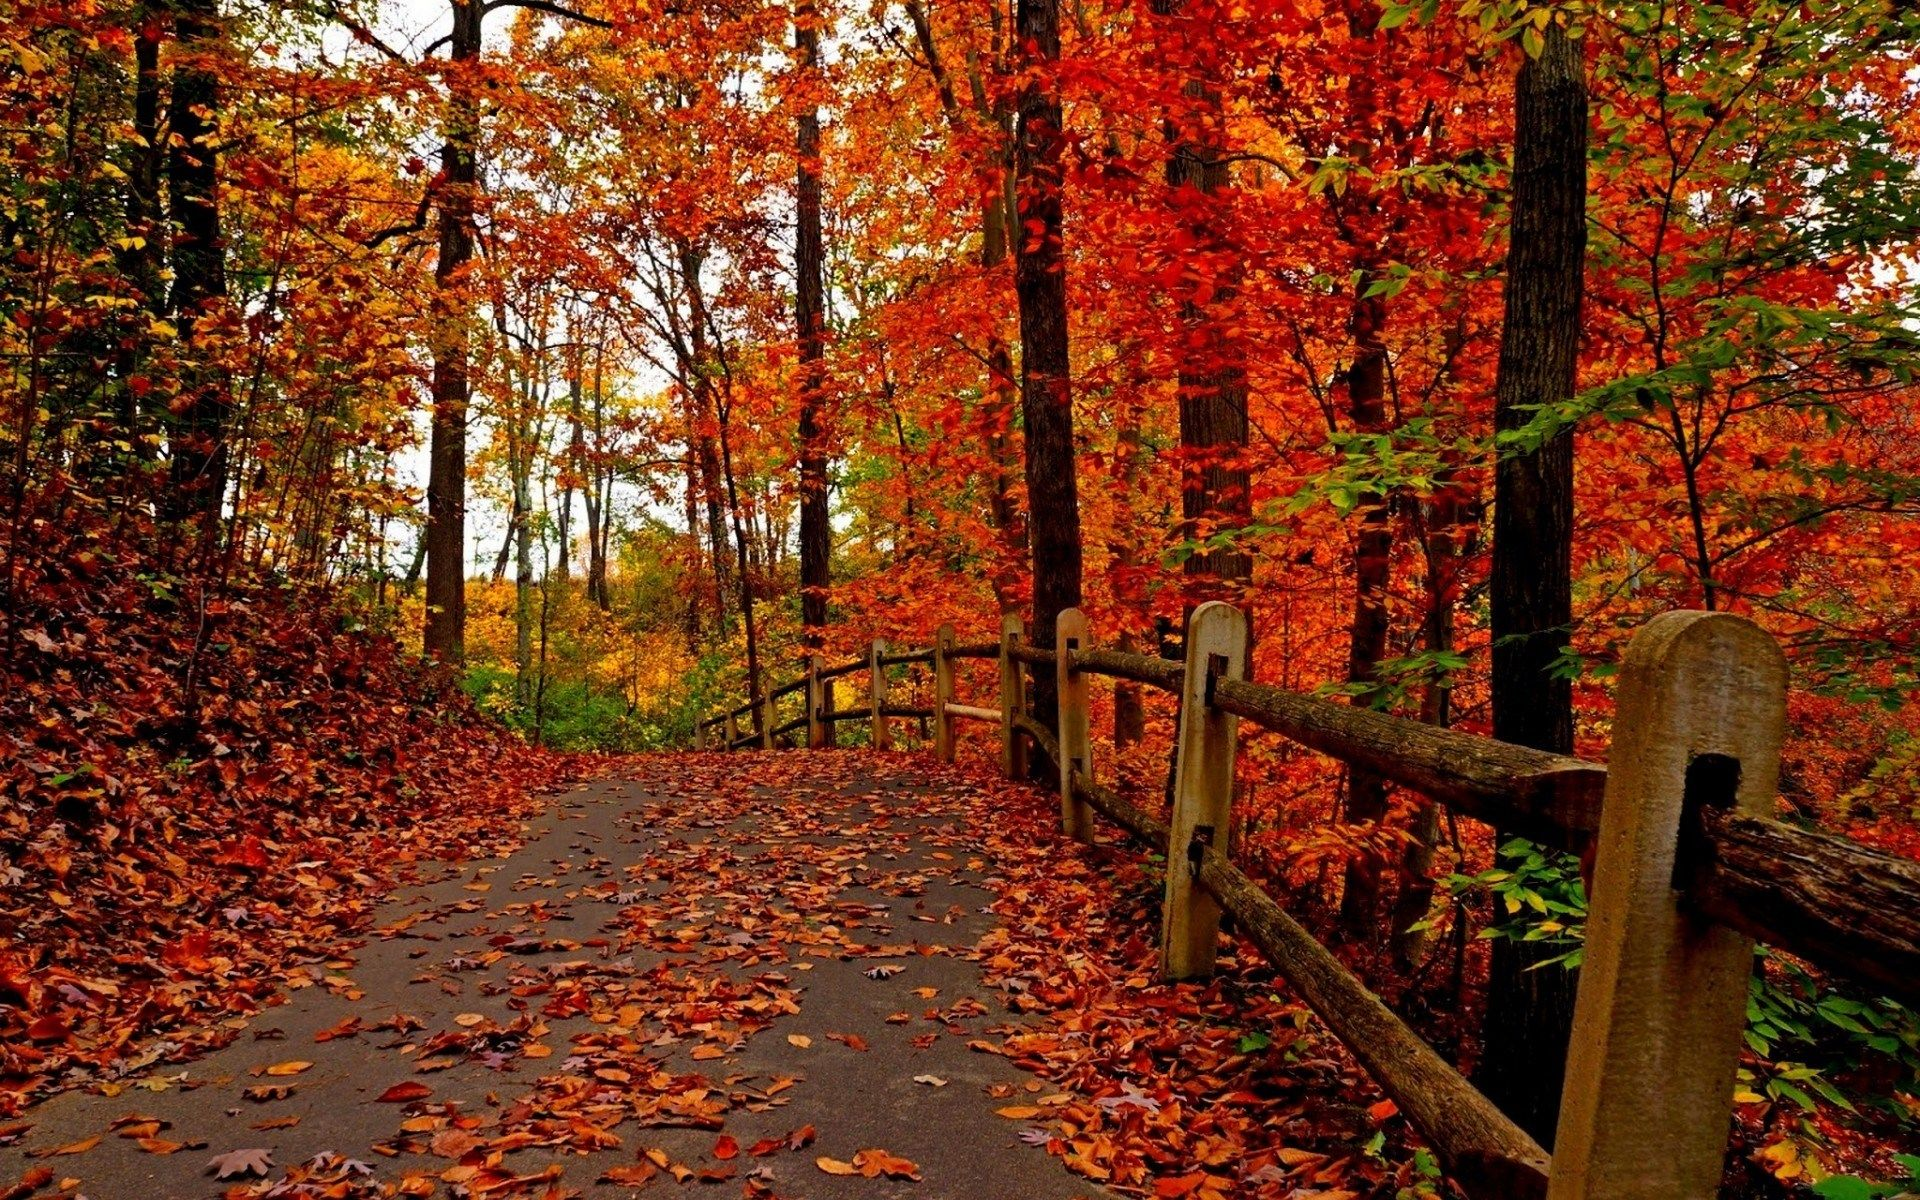 Free Screensaver Wallpapers For Fall Fall Desktop Backgrounds Autumn Trees Autumn Forest